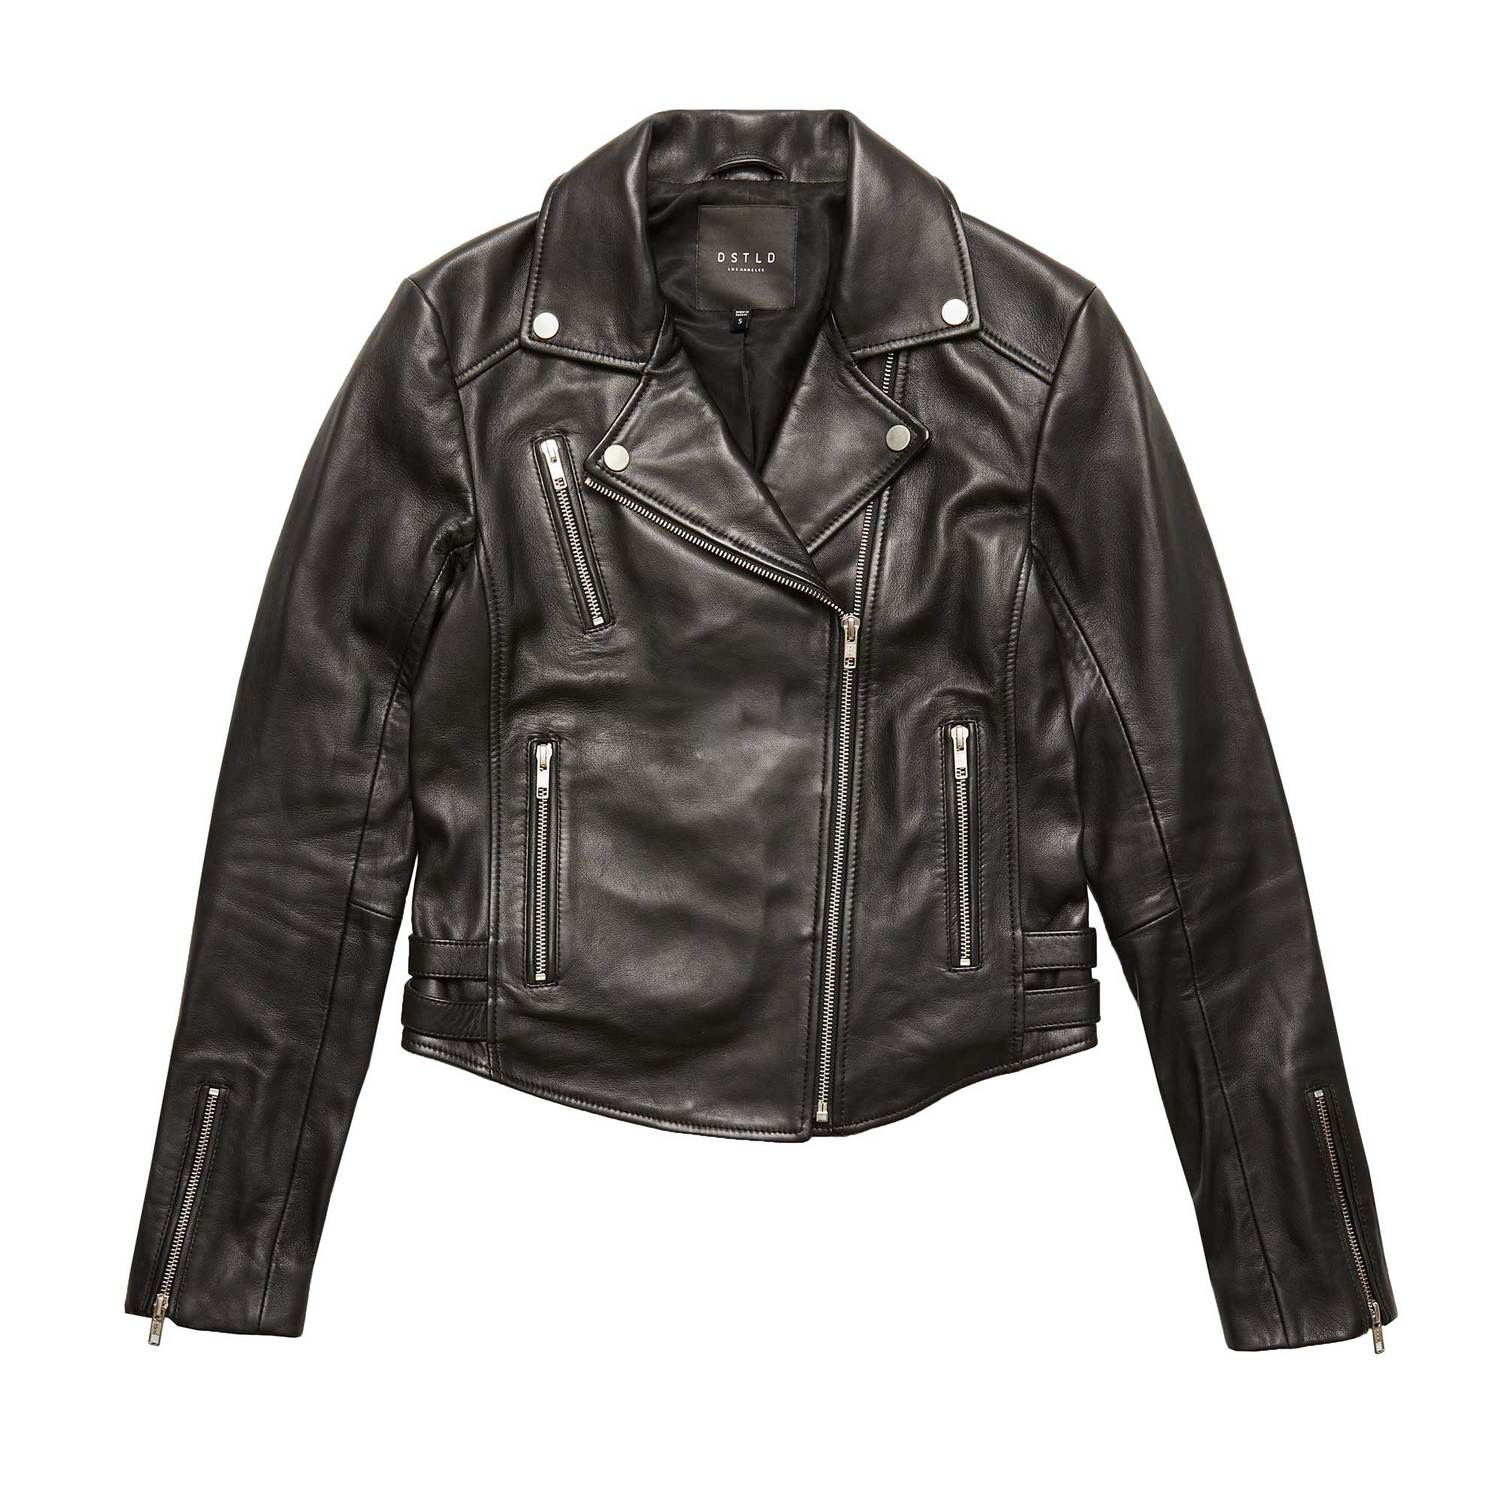 93f3d7bc76 Womens Leather Moto Jacket With Silver Hardware $350 | DSTLD